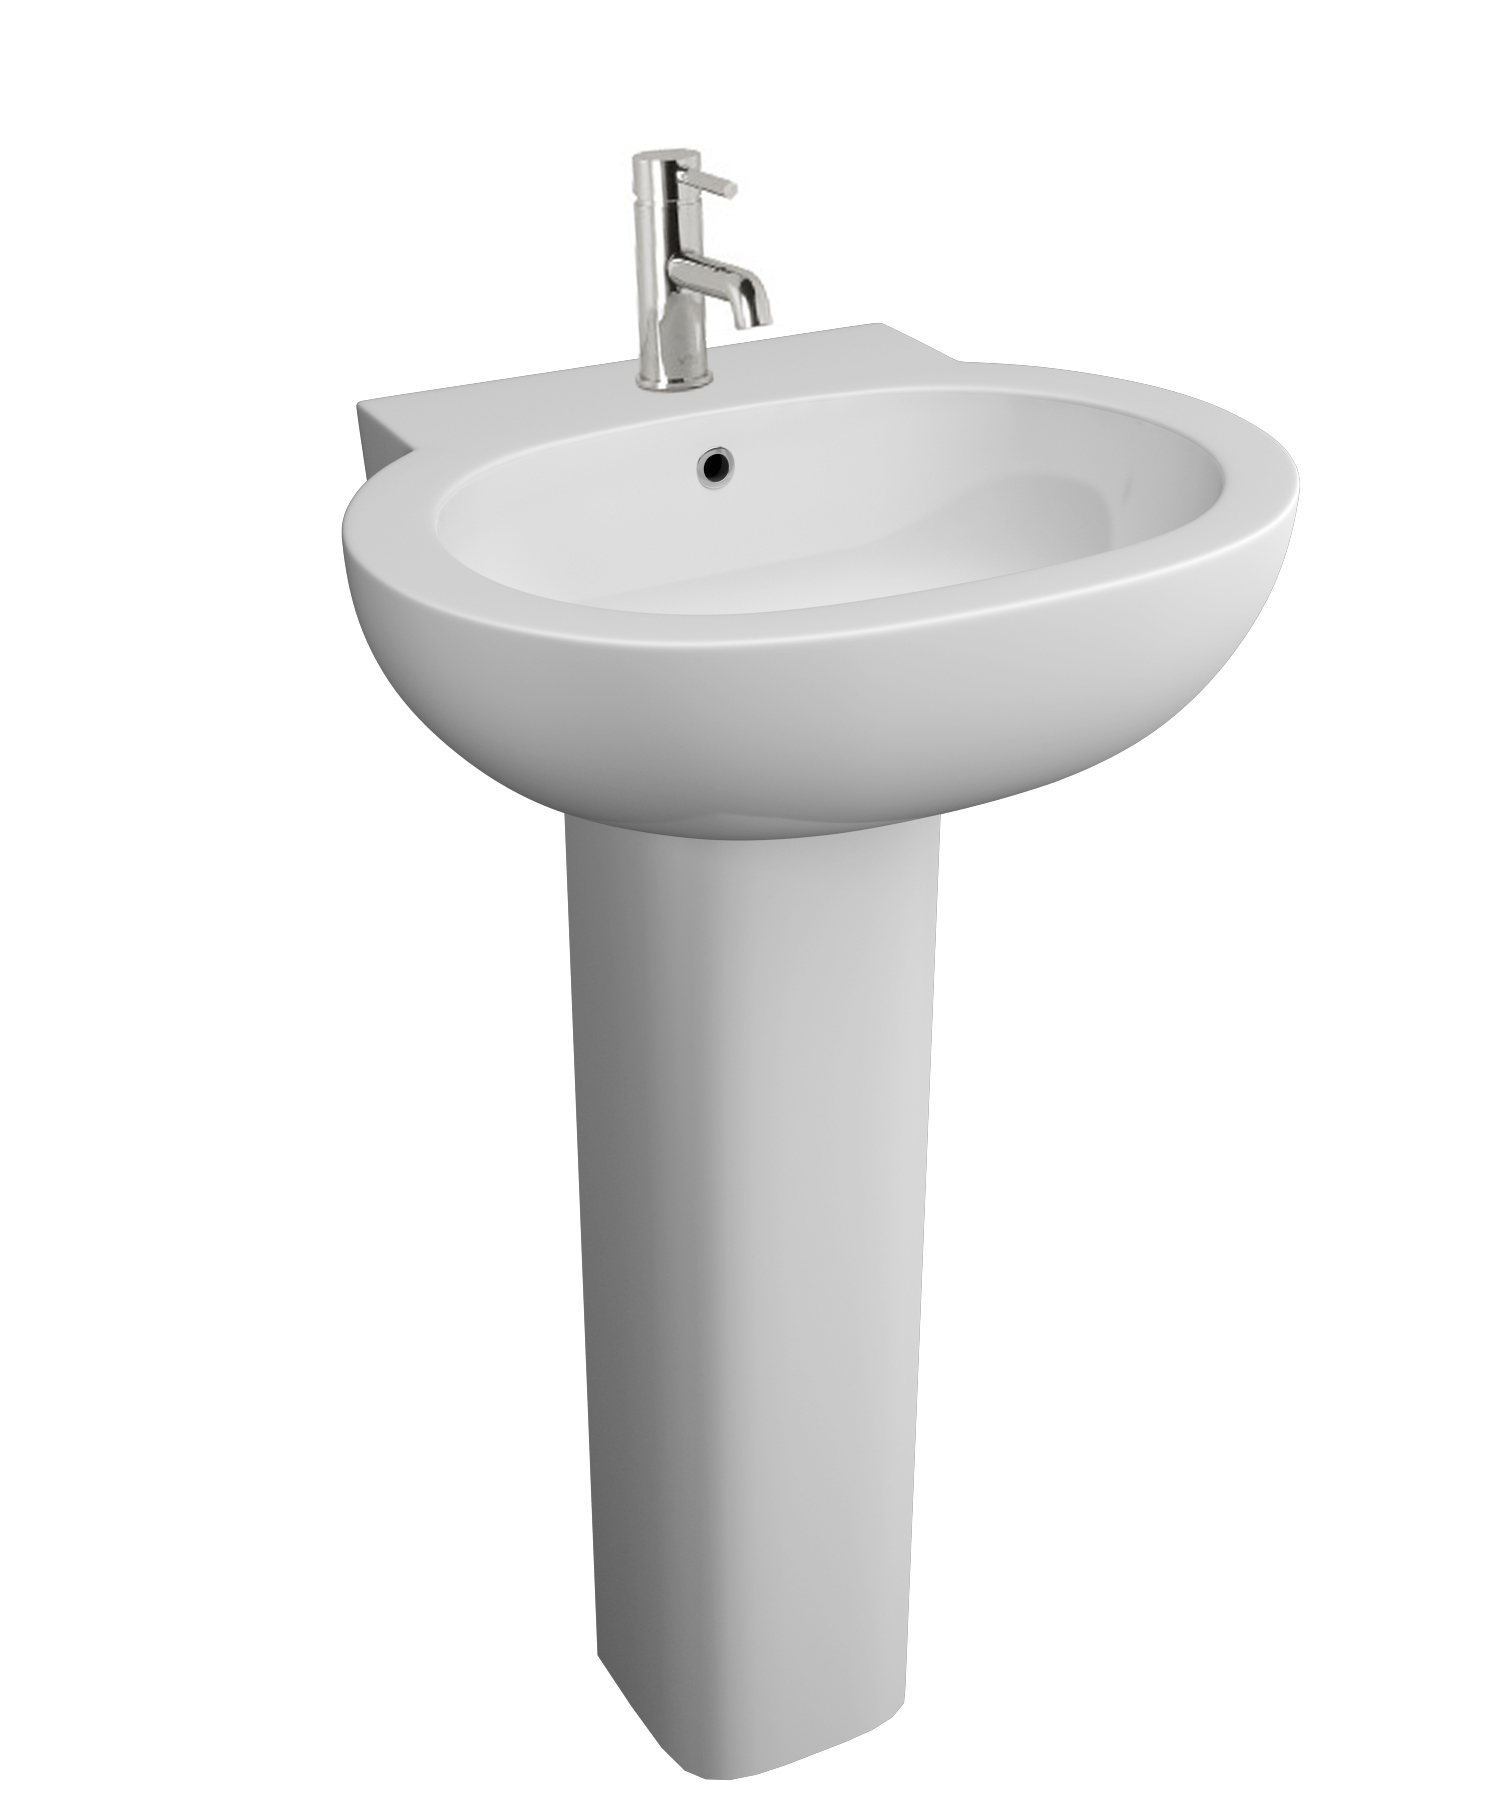 K-Vit Milano 550 1TH Basin & Pedestal